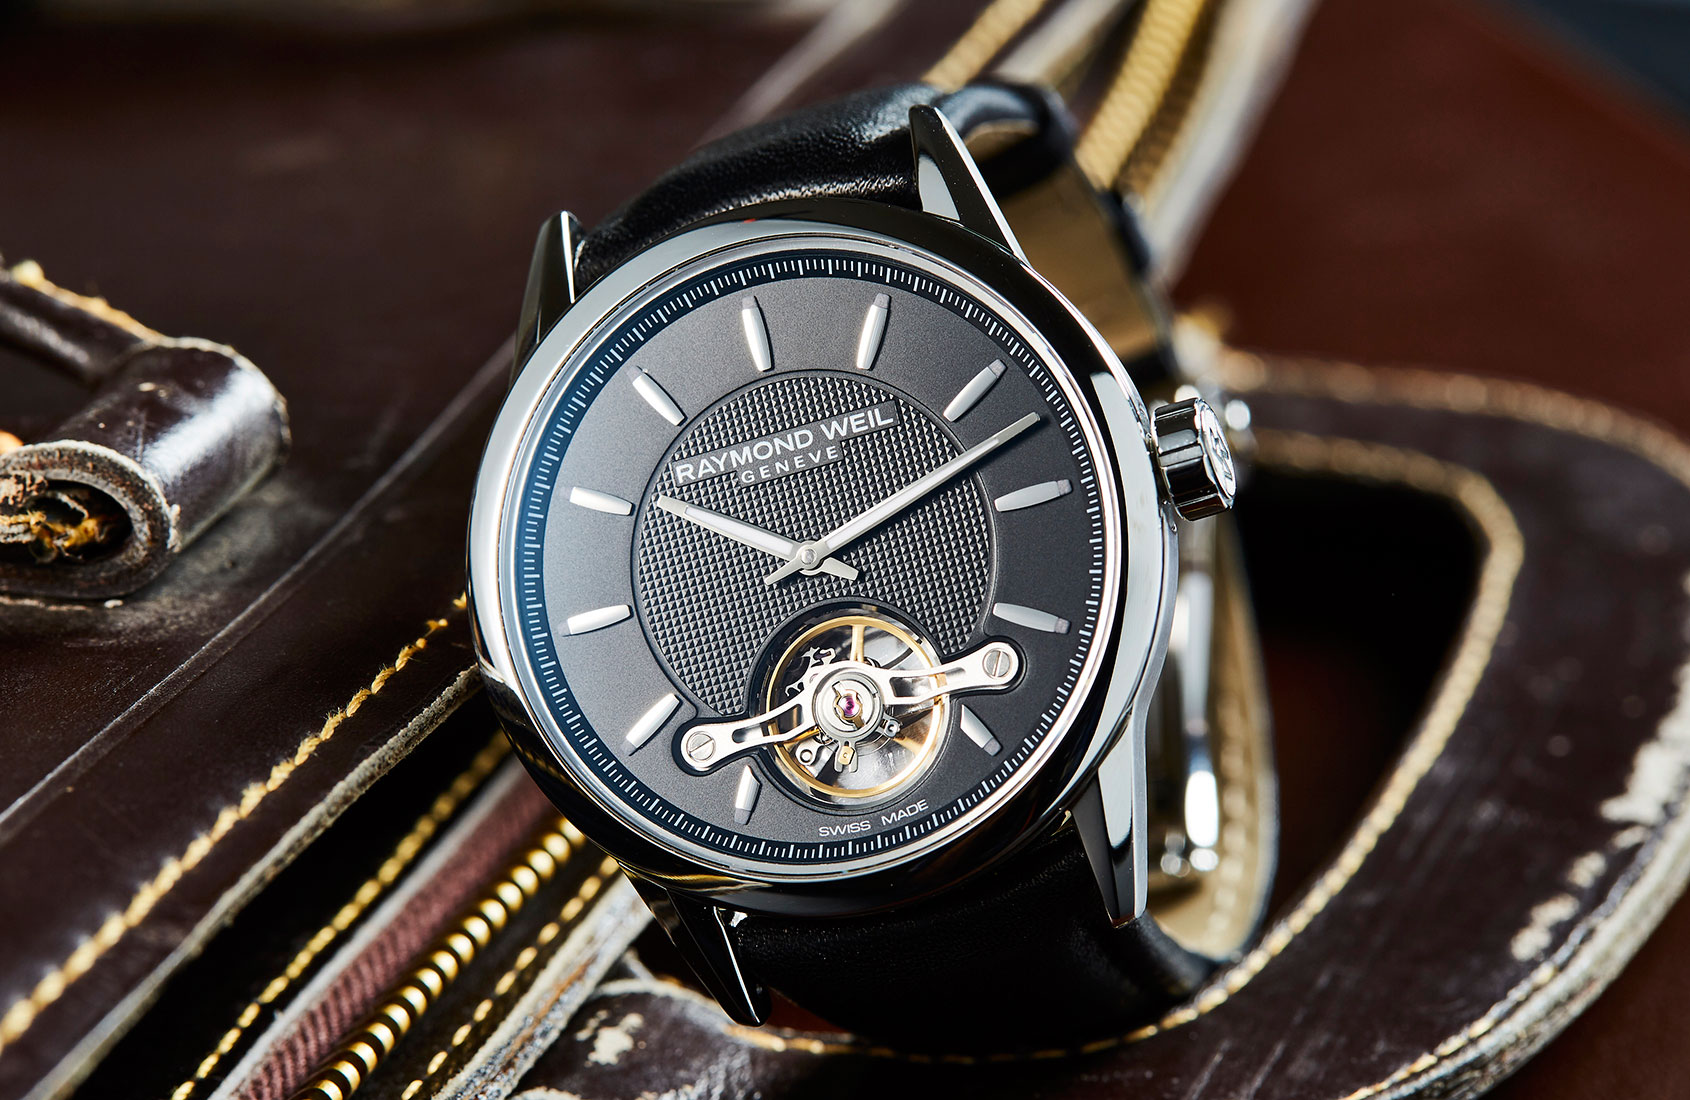 Raymond Weil Freelancer Calibre RW1212 – Hands-on Review